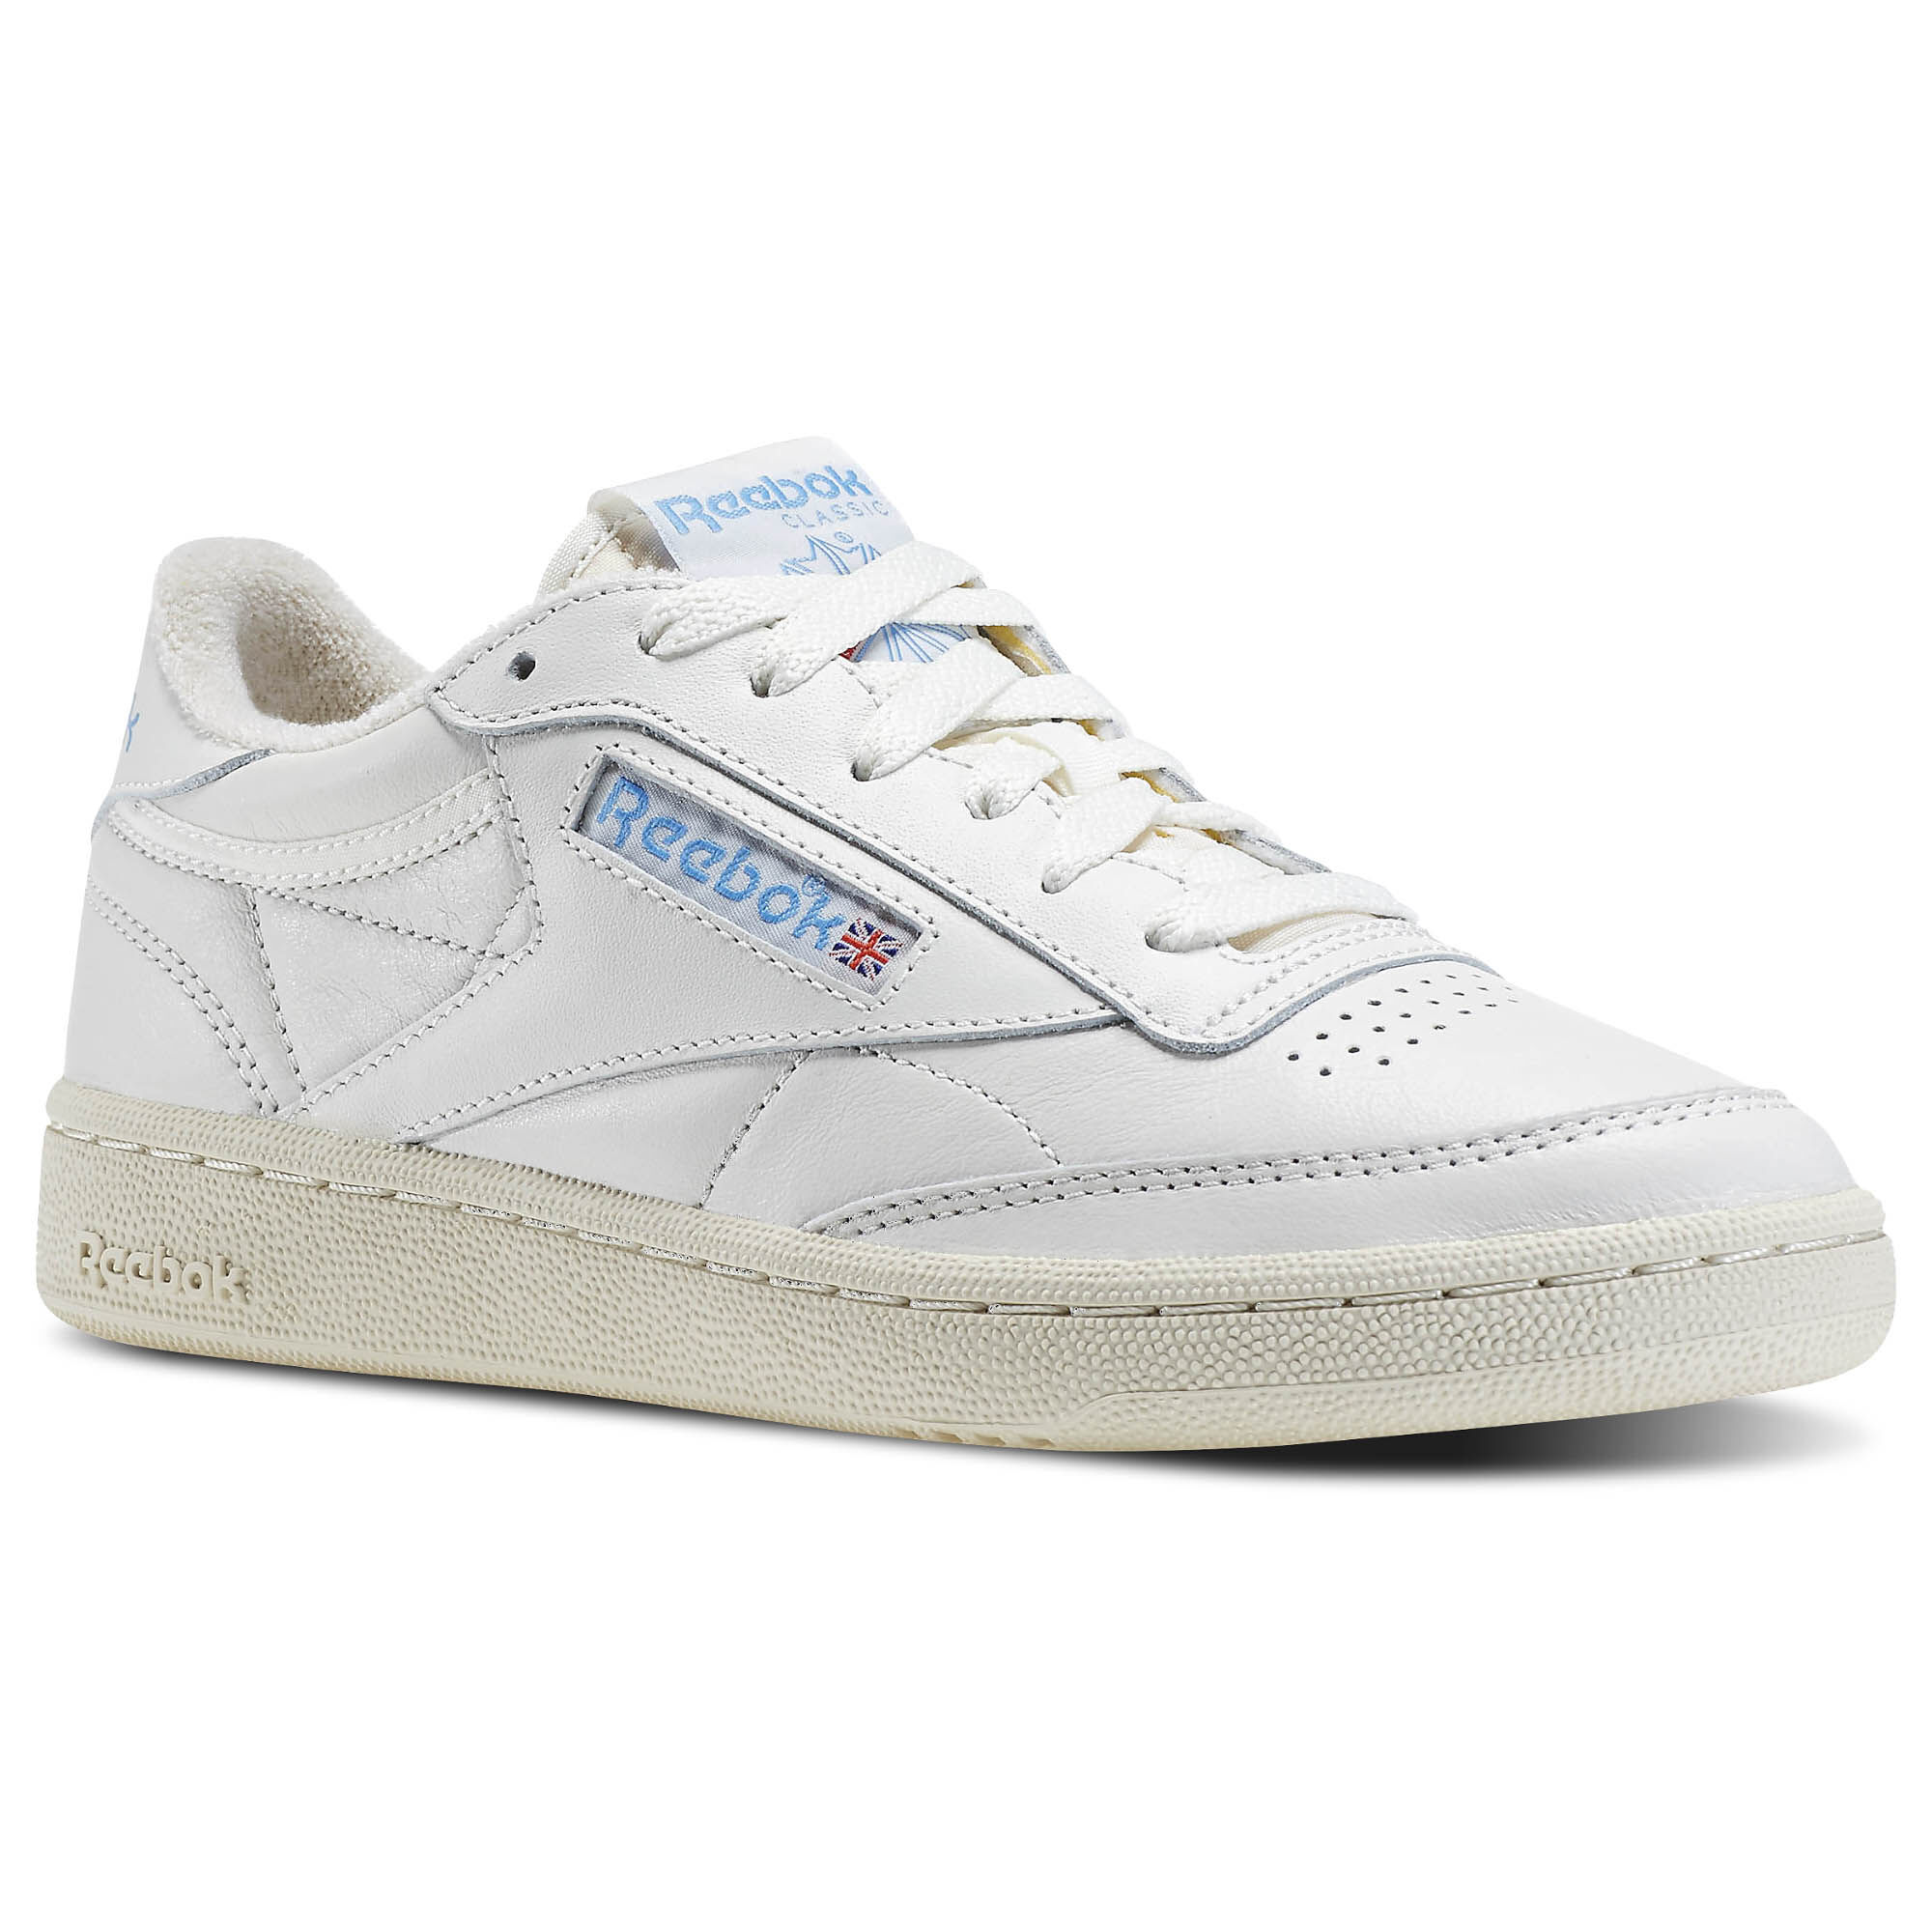 Reebok - Club C 85 Vintage Chalk/Paperwhite/Athletic Blue/Excellent Red V69406